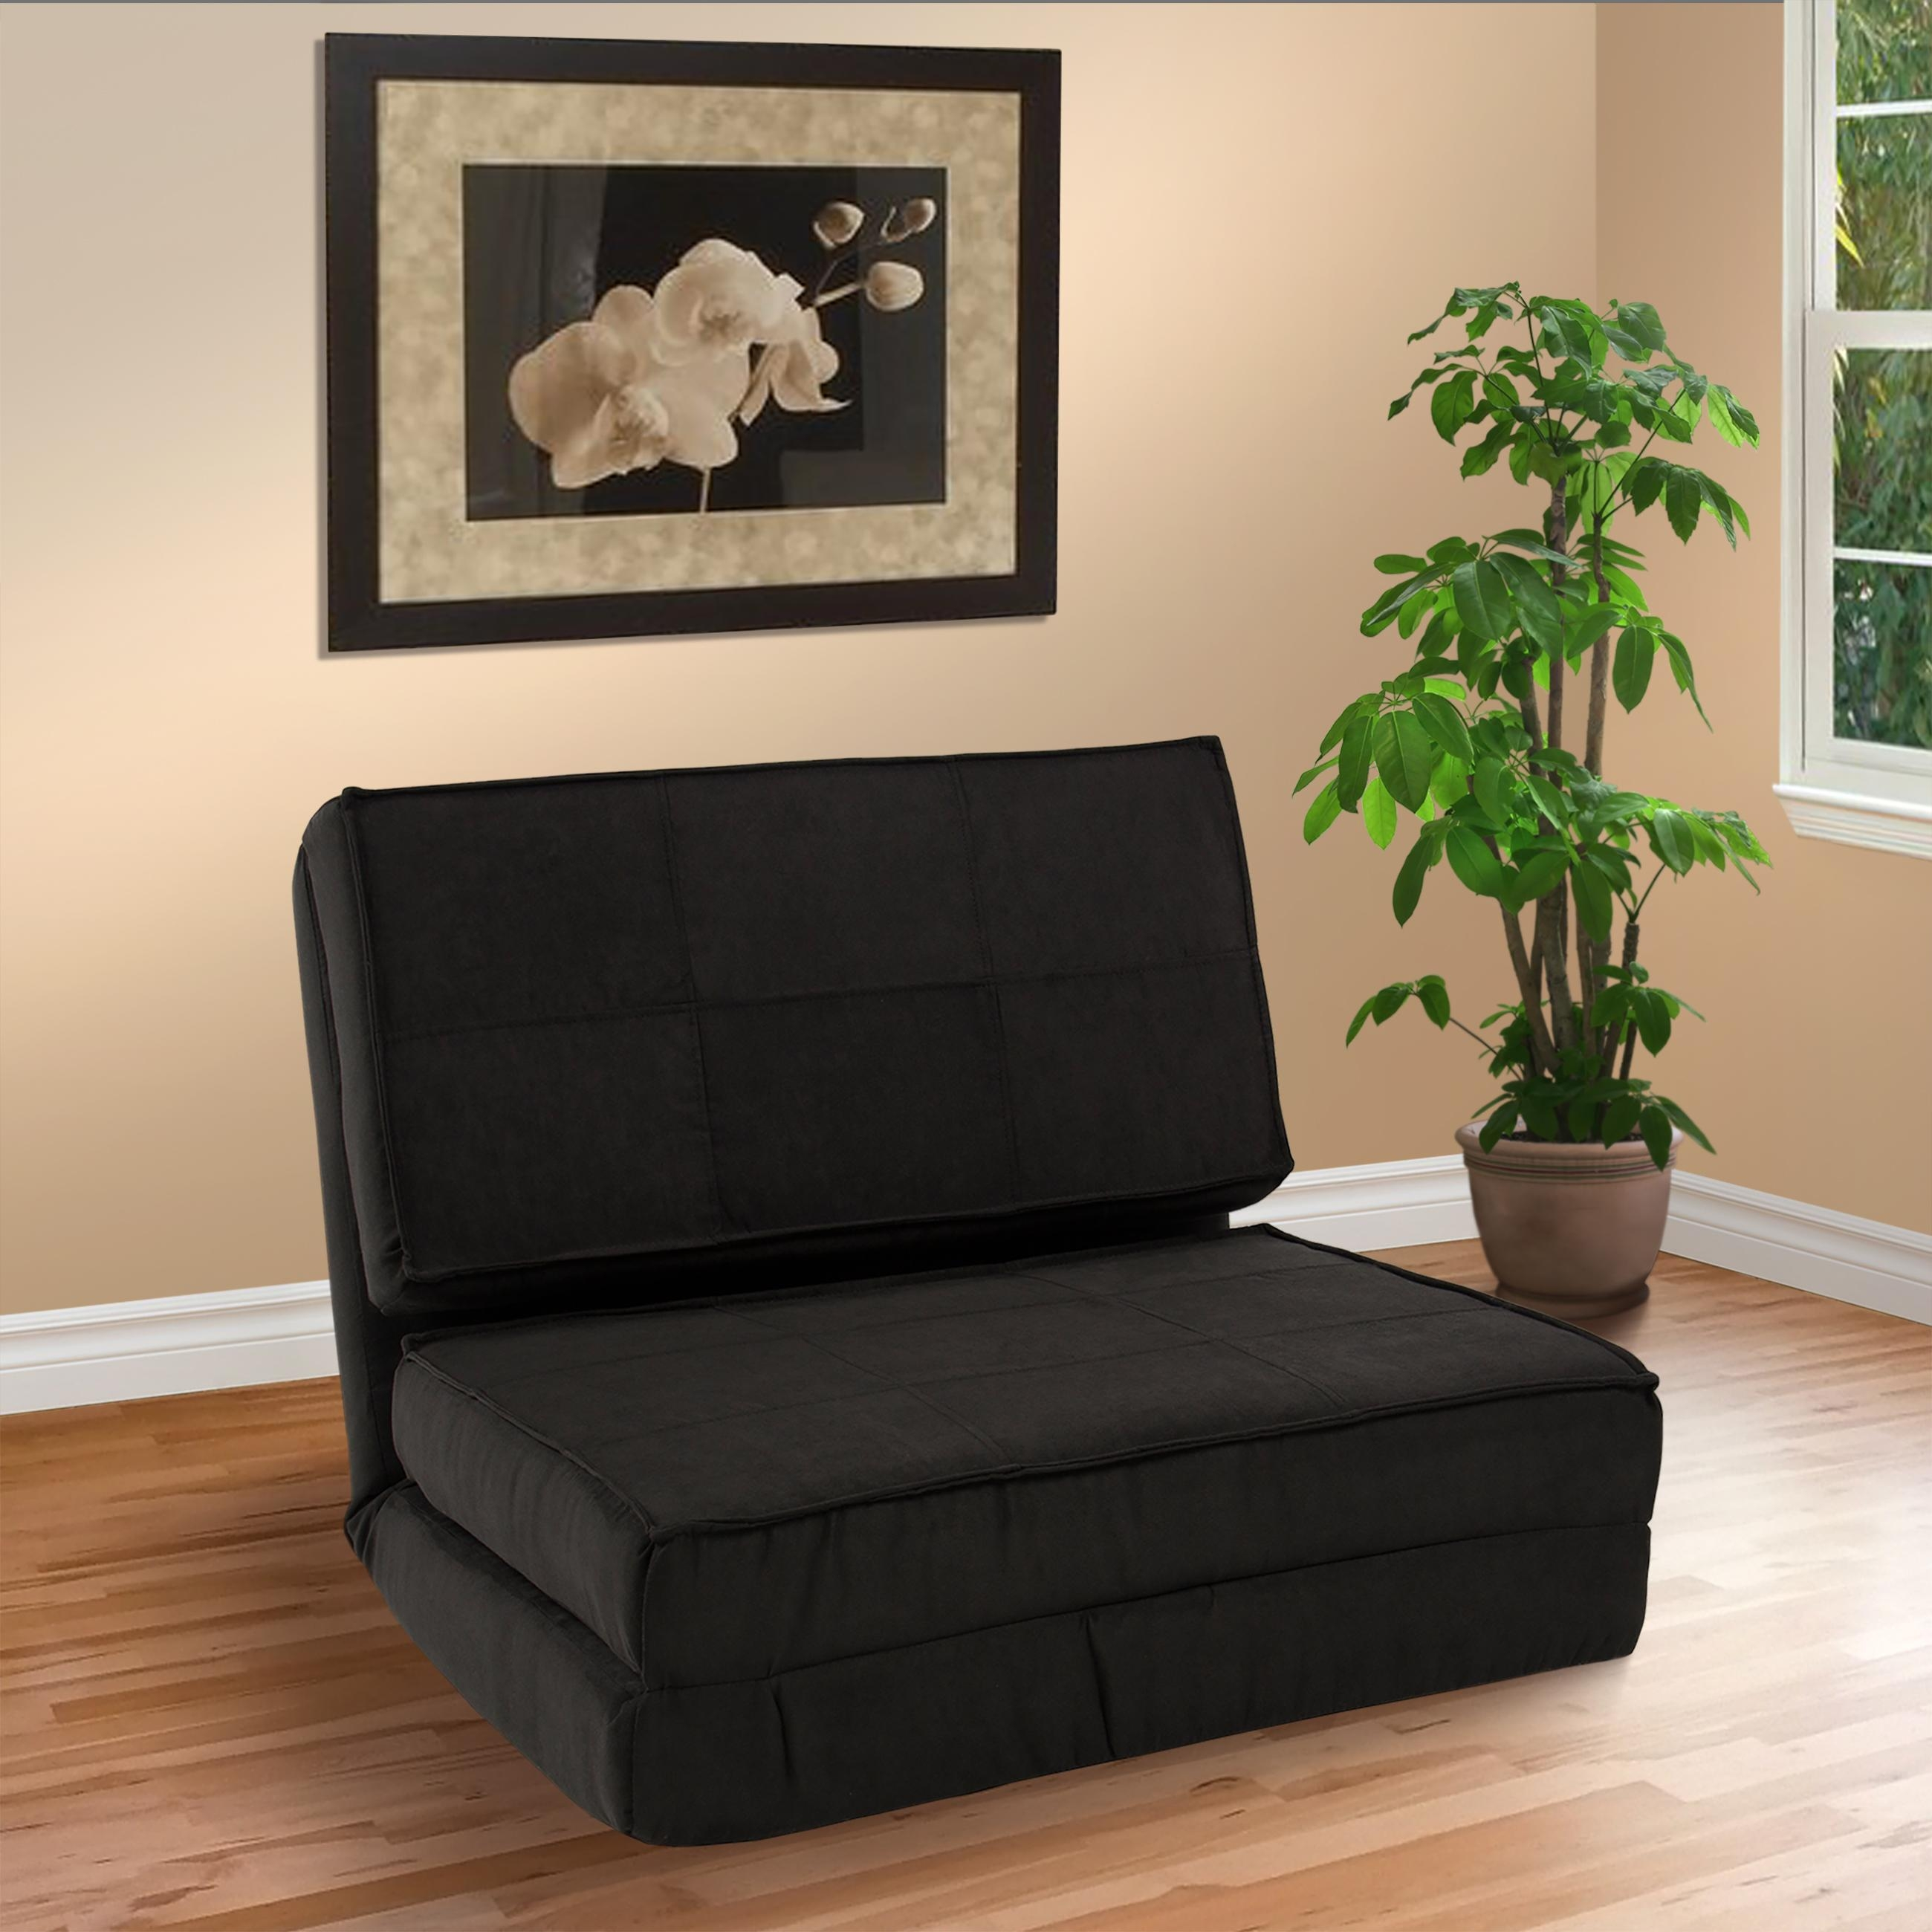 Best Choice Products Convertible Sleeper Chair Bed (Black Inside Fold Up Sofa Chairs (Image 7 of 22)